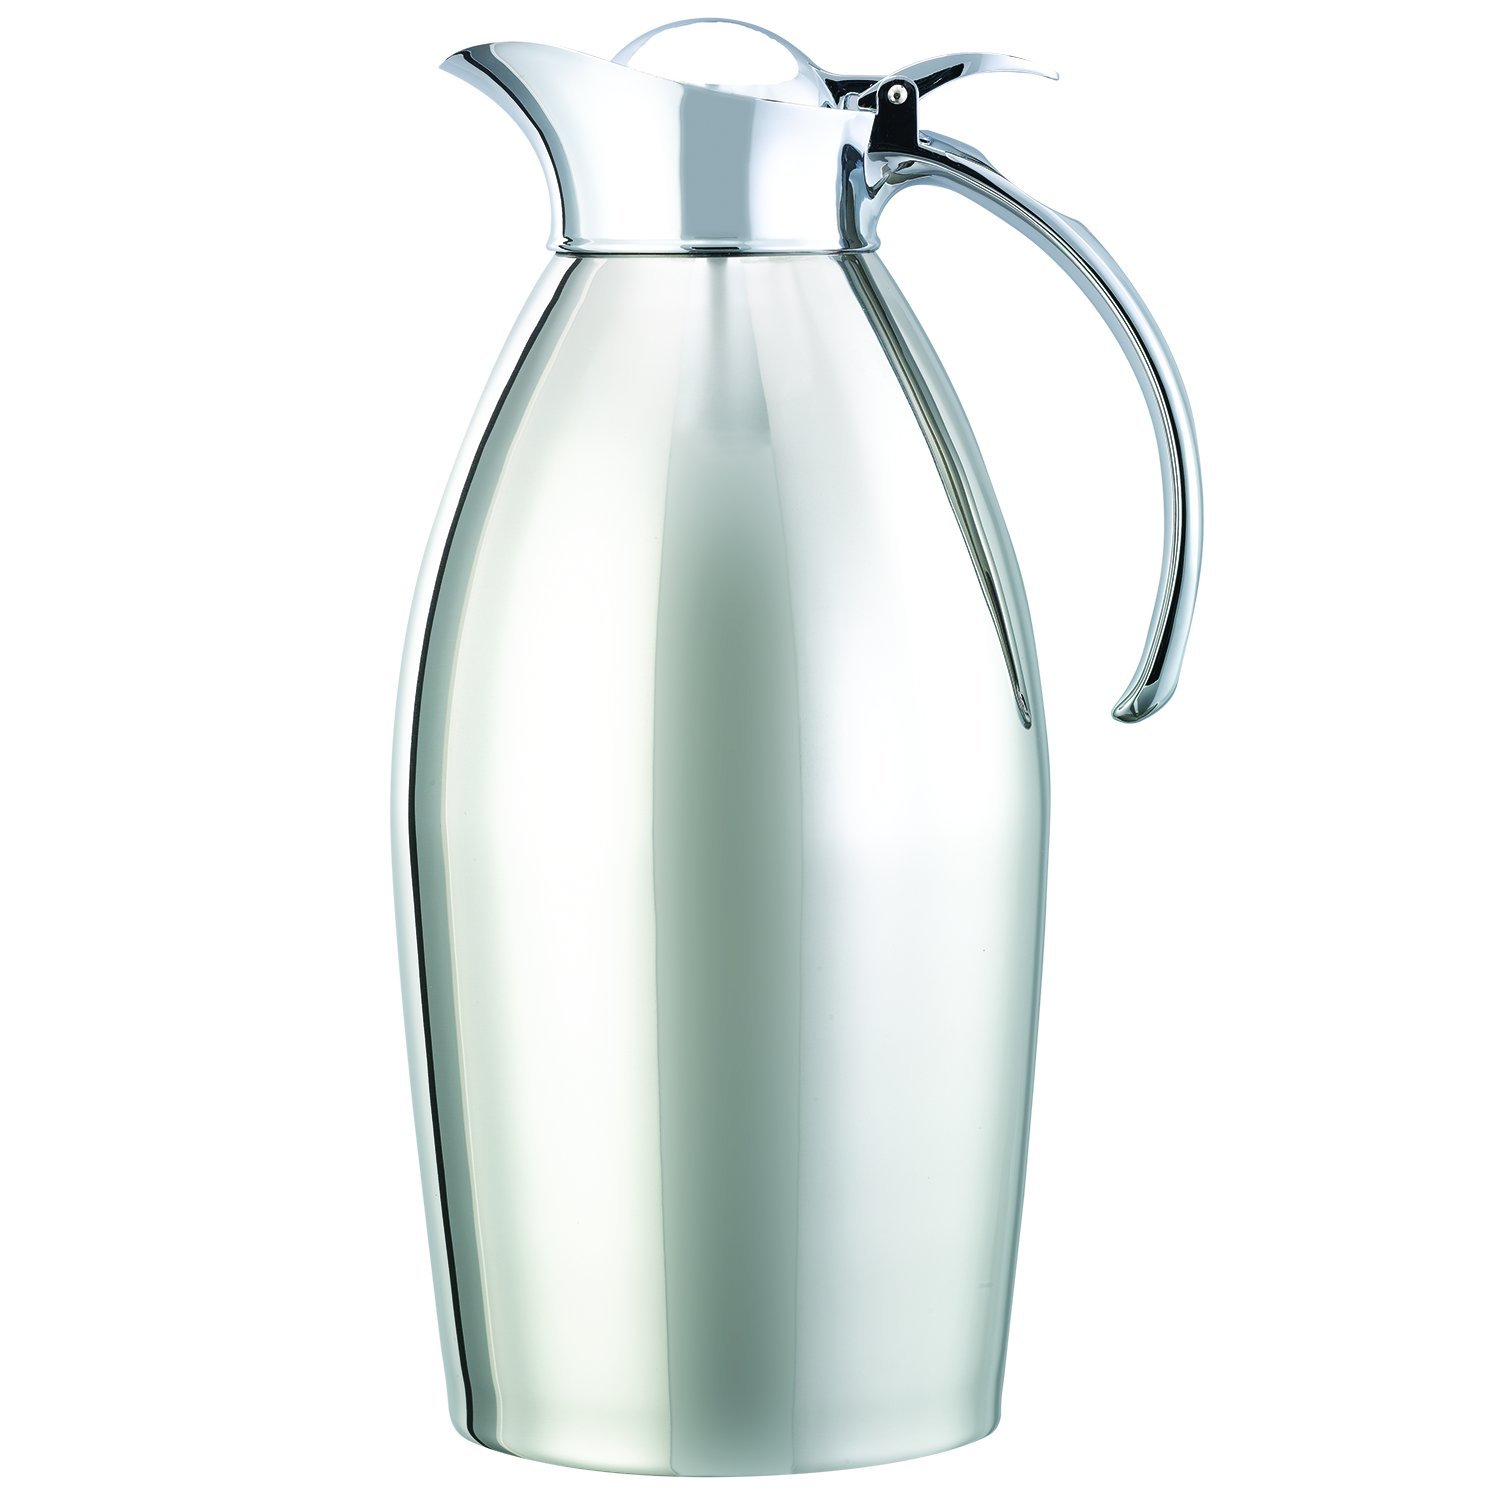 Service Ideas 98115PS Carafe, Stainless Steel, Chrome Plated, 1.5 L